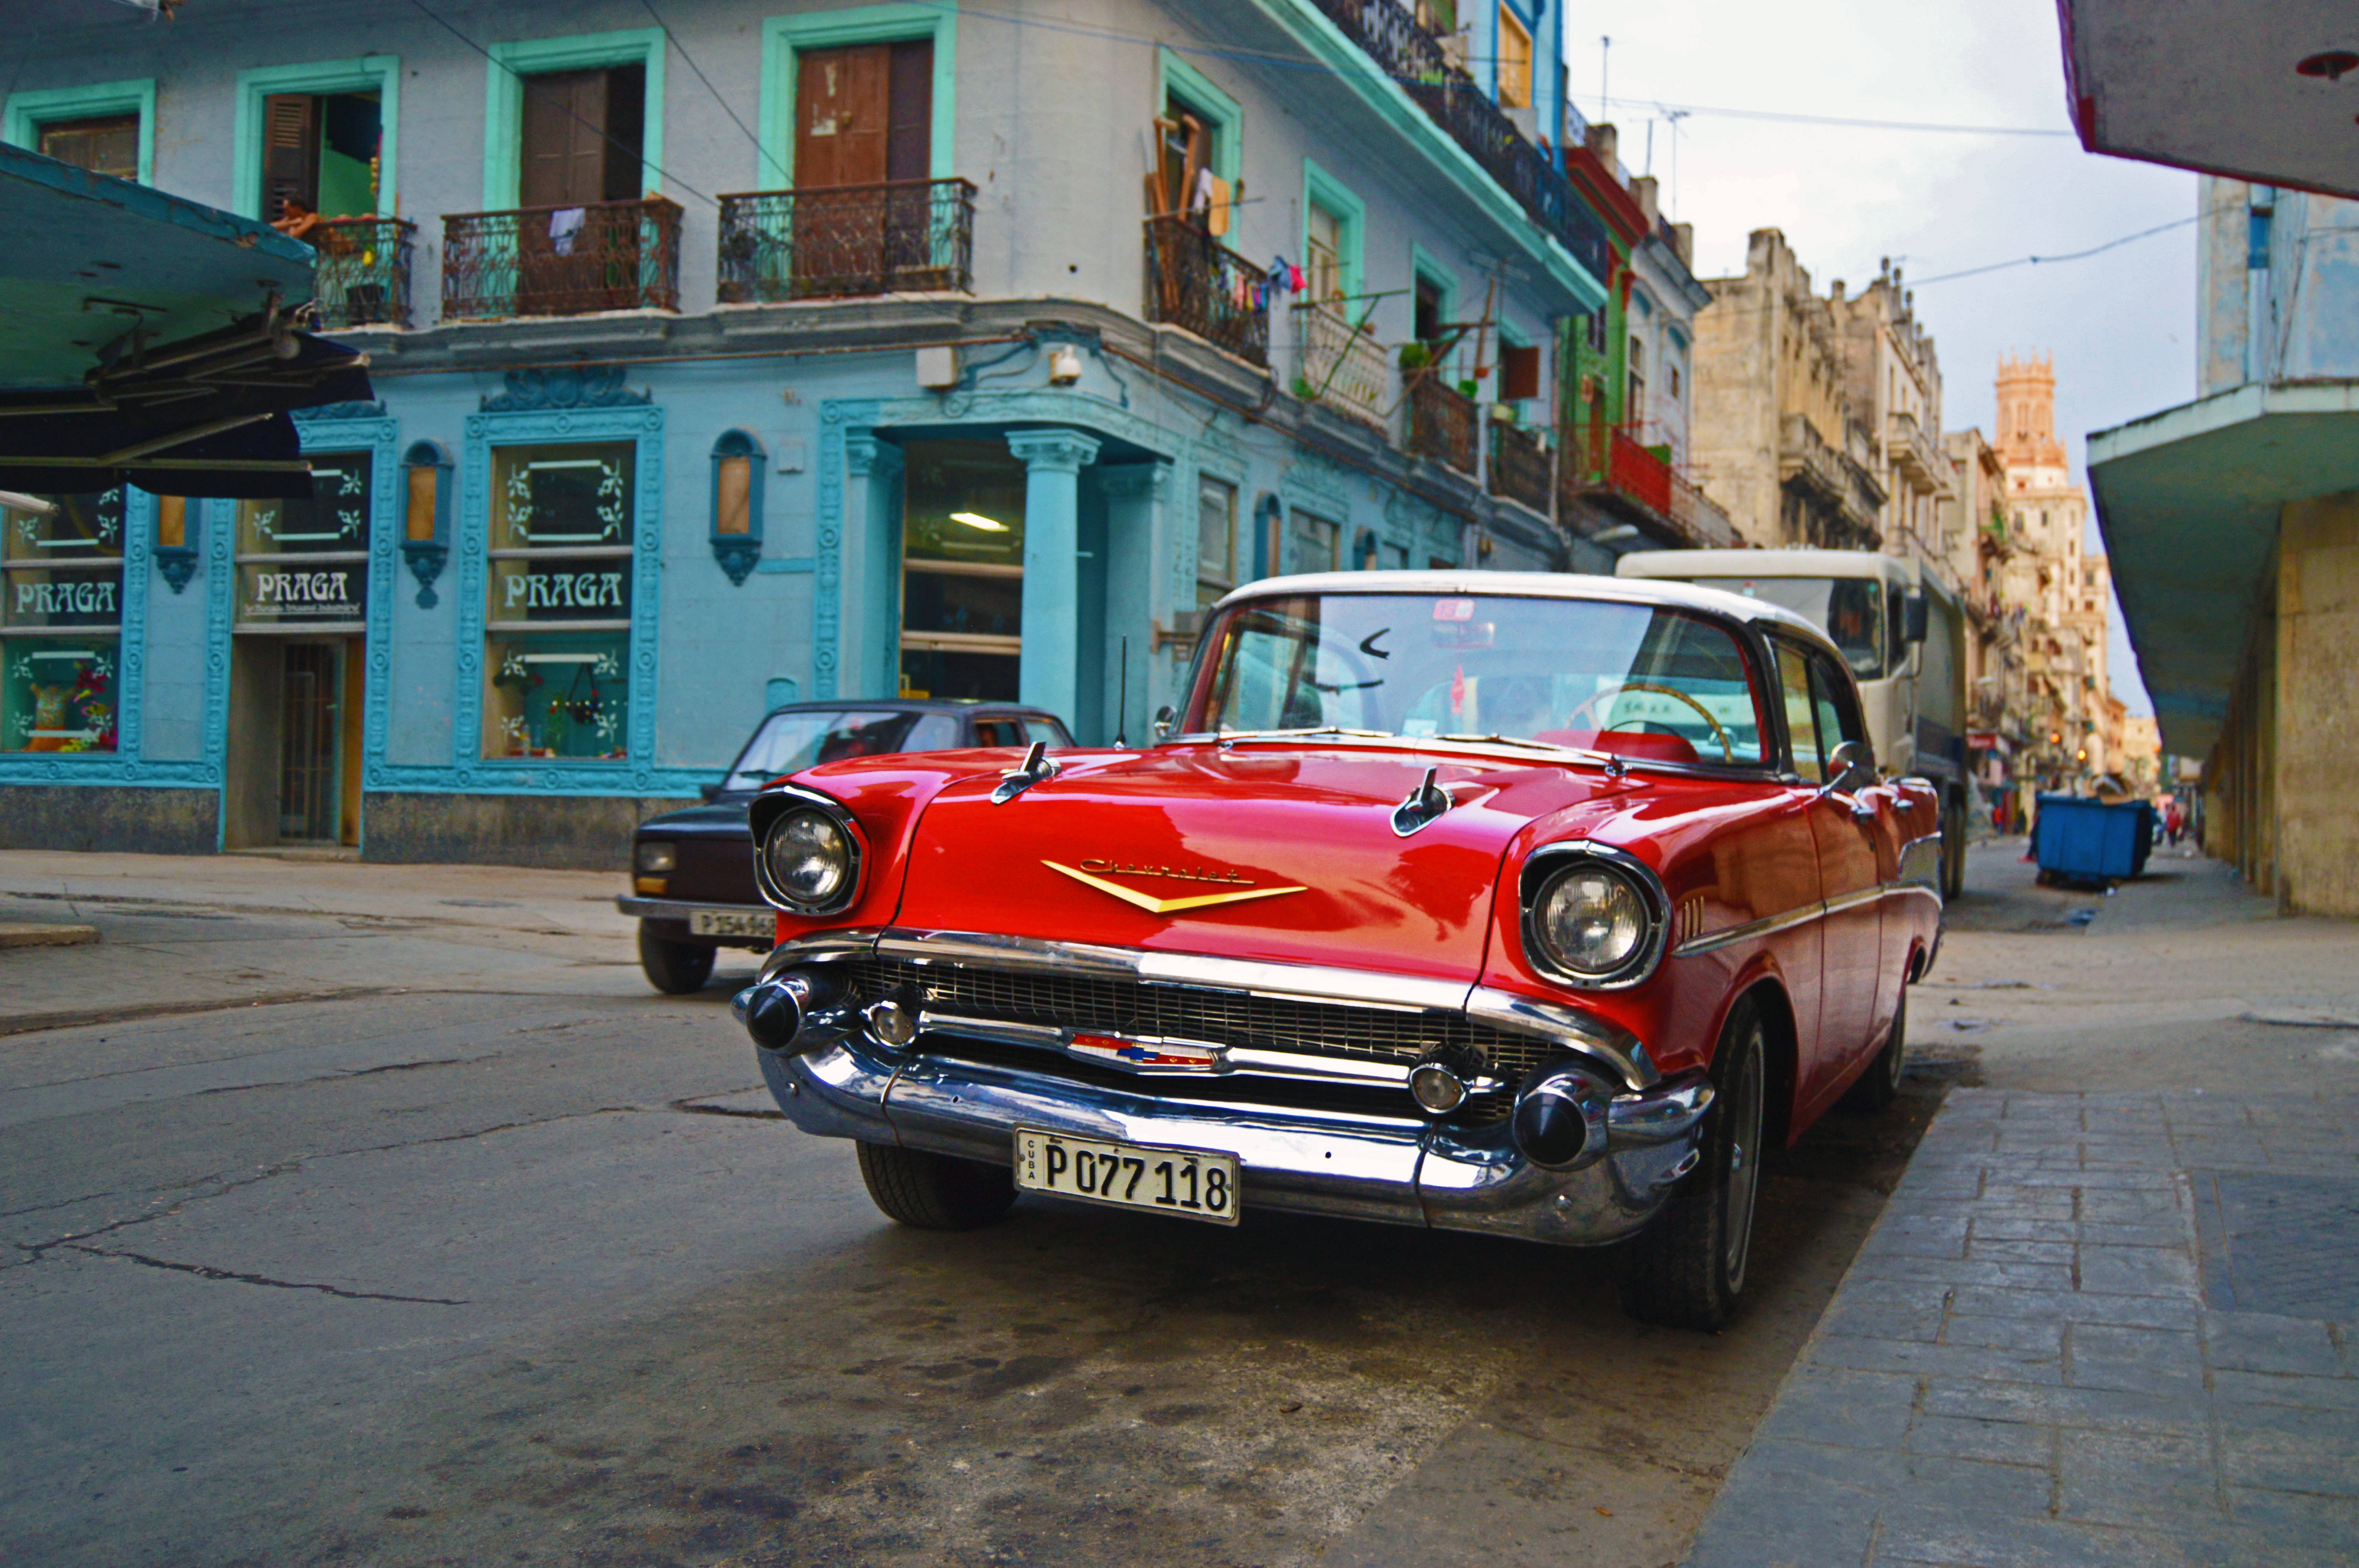 Don't get stranded in Cuba! 8 tips for Americans to help your Cuban vacation go smoothly.